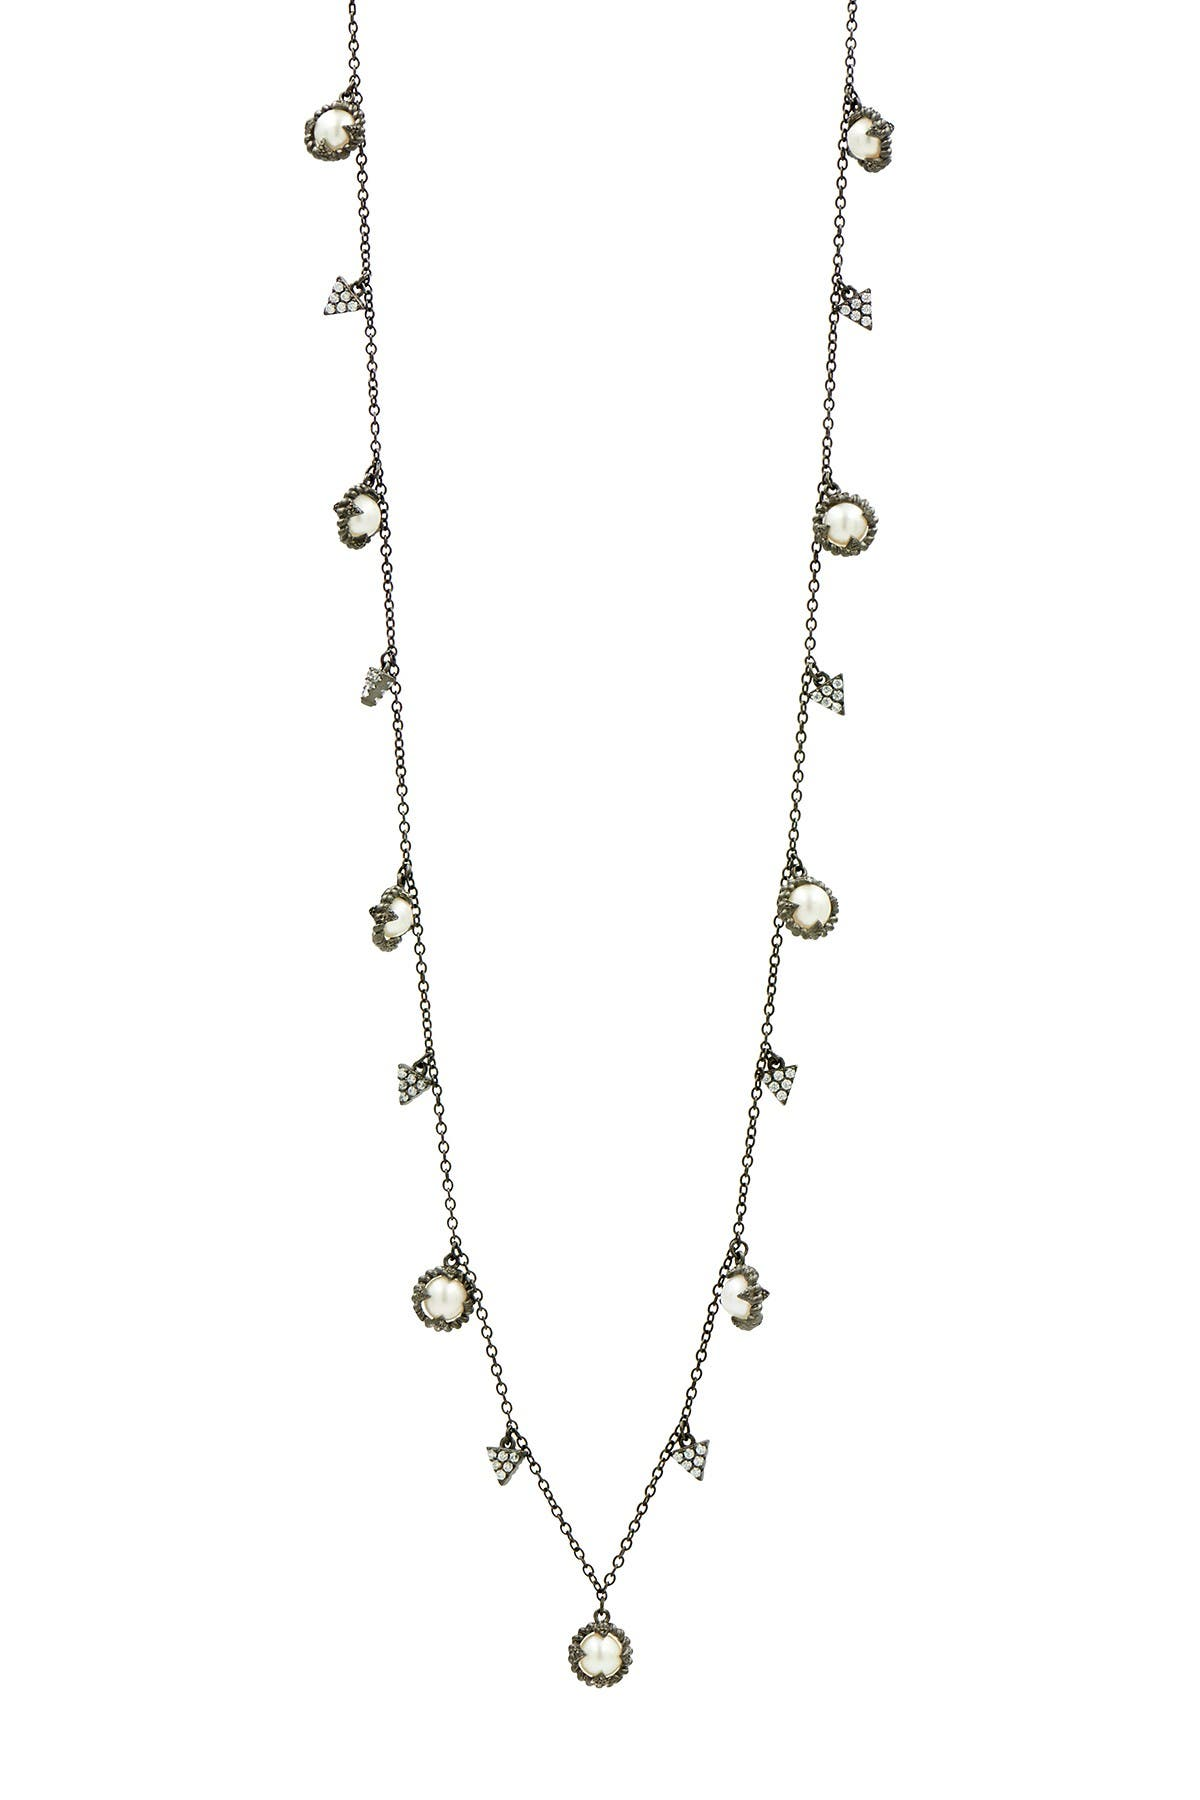 Image of Freida Rothman Textured Pearl Delicate Necklace